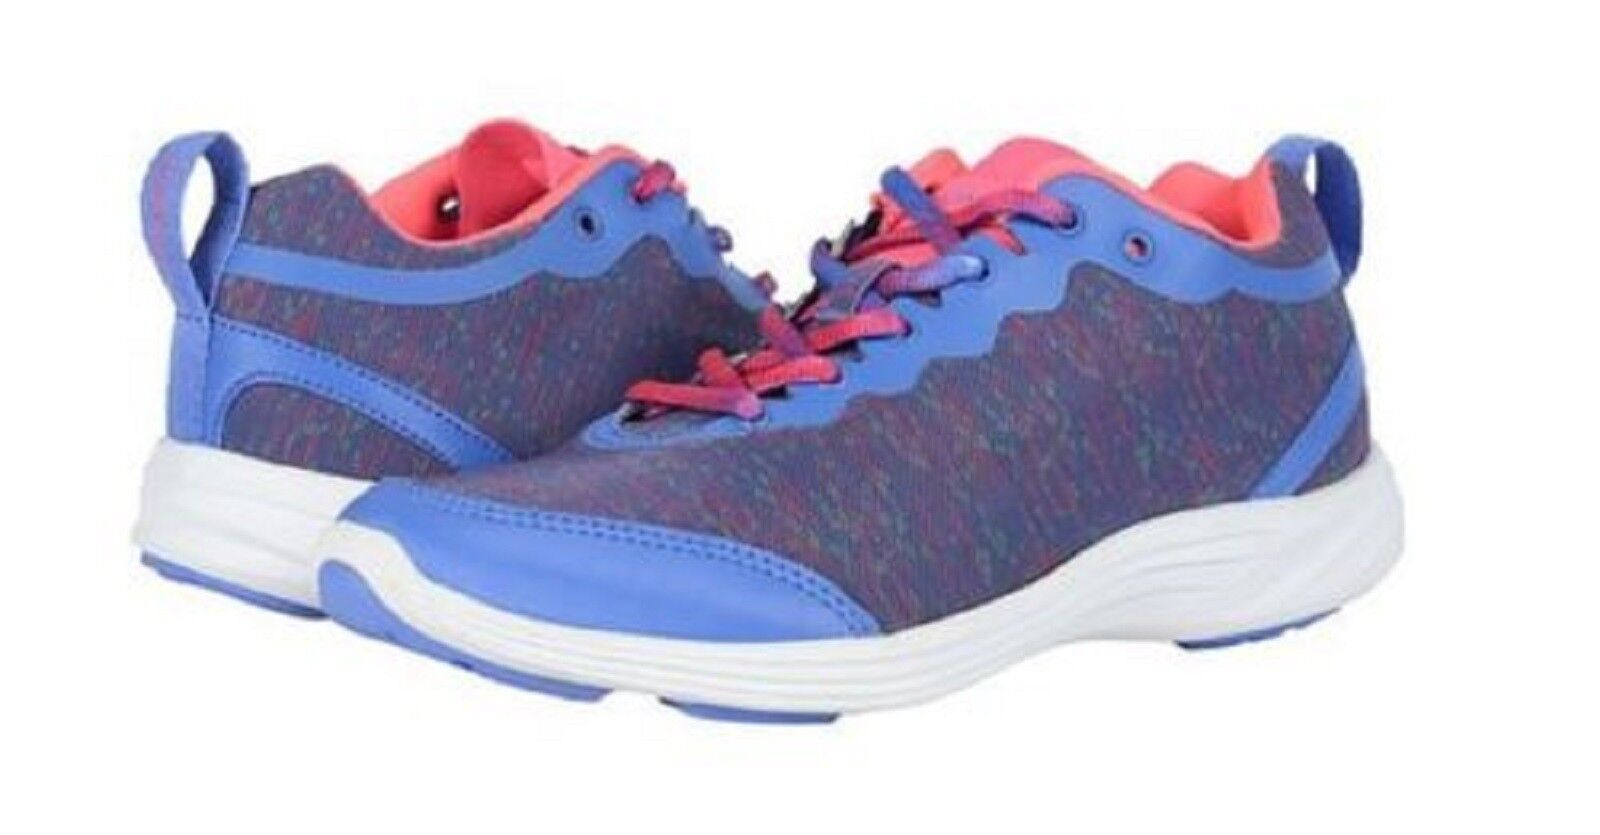 VIONIC VIONIC VIONIC 'Agile Fyn' Ladies Cobalt  Lace-Up Athletic  Chaussures  Sz. 6 M NIB 4f6d35